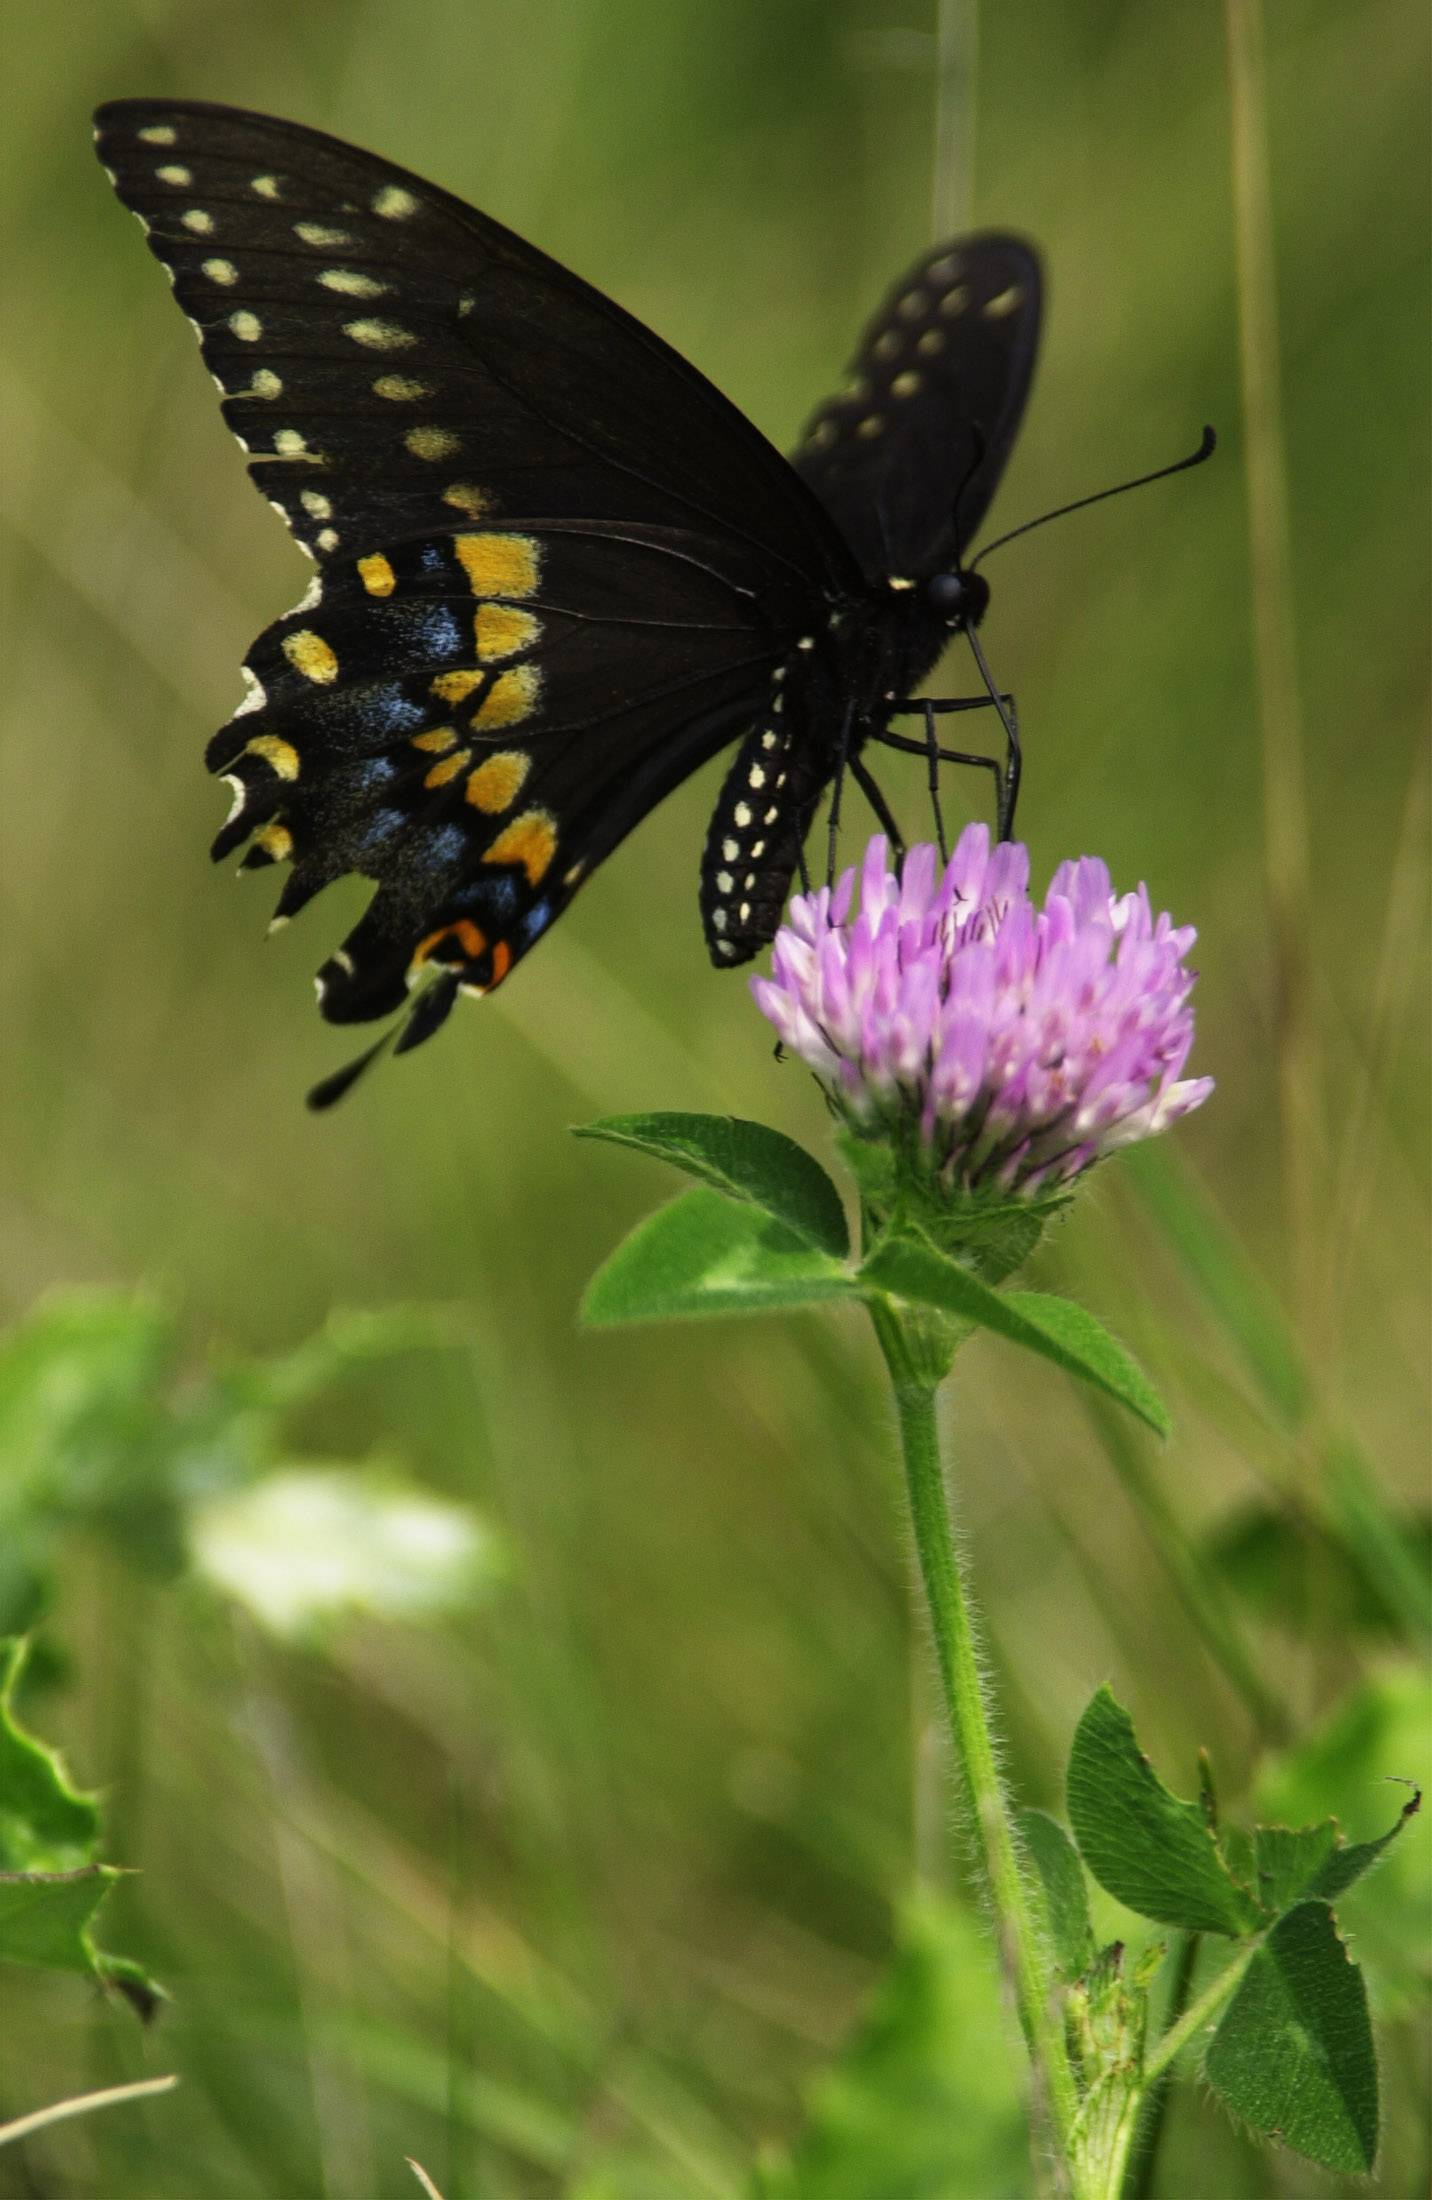 Like to shoot pictures of nature? This Eastern Black Swallowtail butterfly was shot sitting on a clover blossom in the Grassy Ridge Meadow Forest Preserve in Hoffman Estates, where a Photo Meet-Up will be held on May 24.